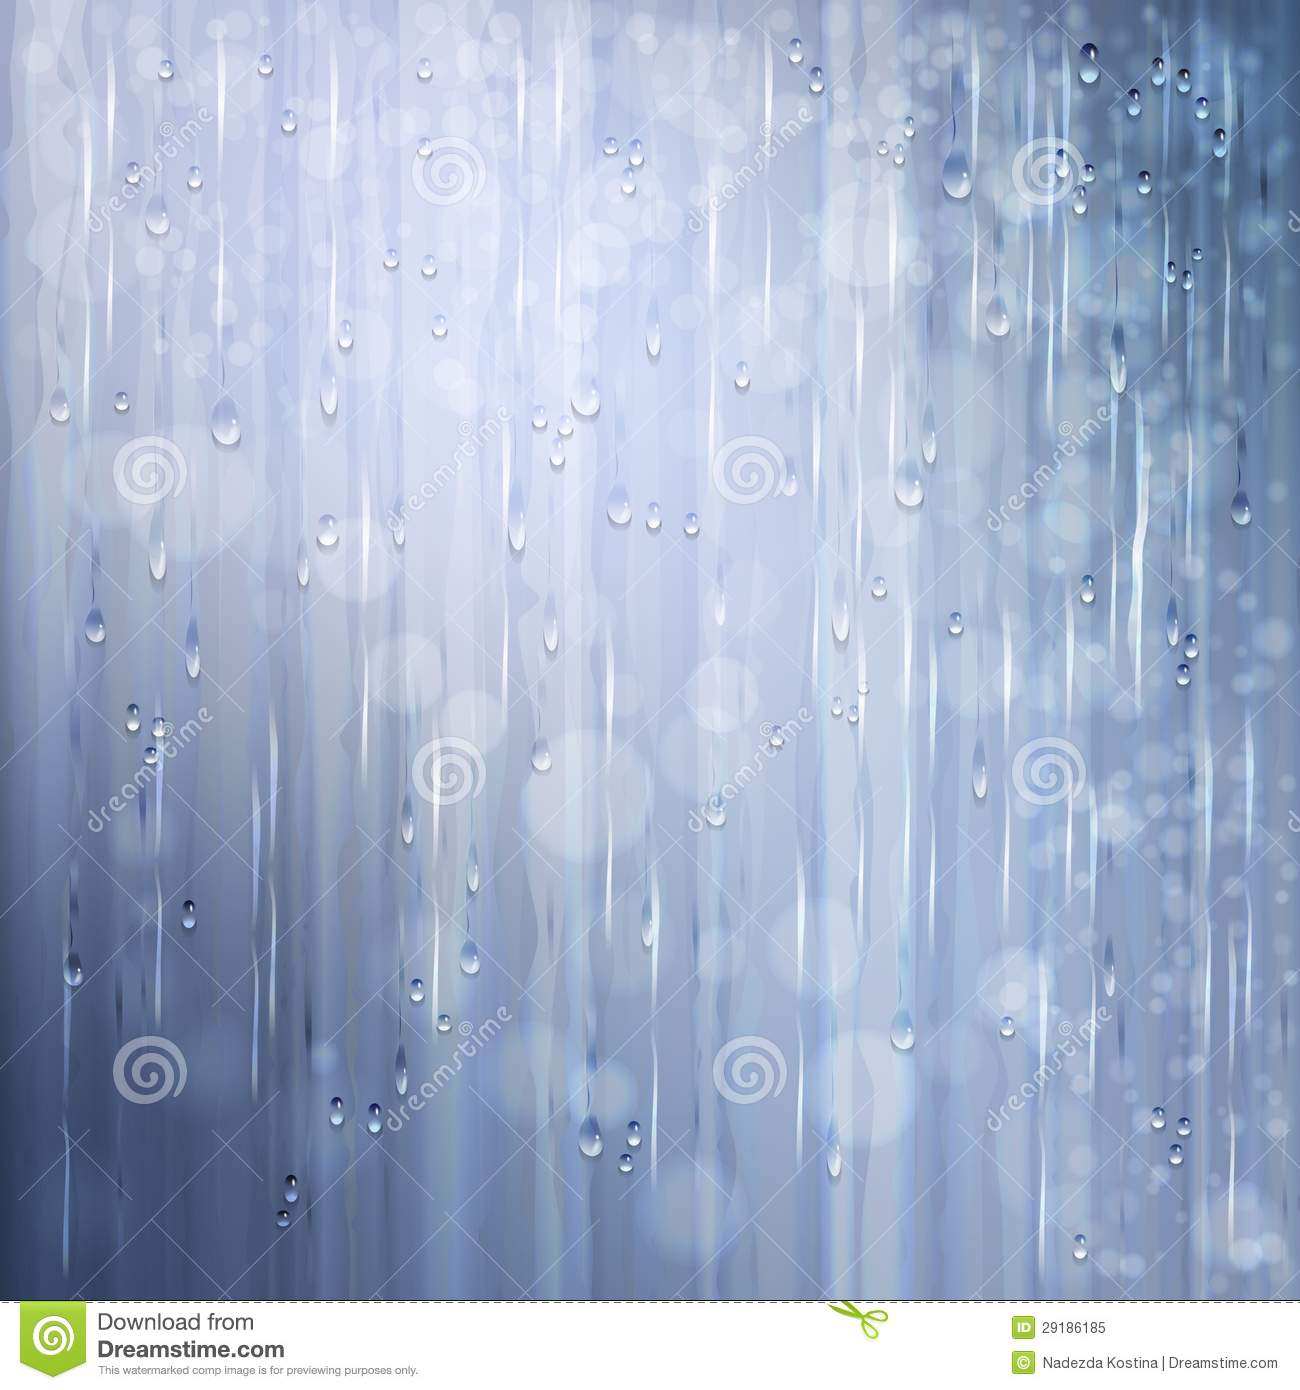 Grey shiny rain. Abstract water background design